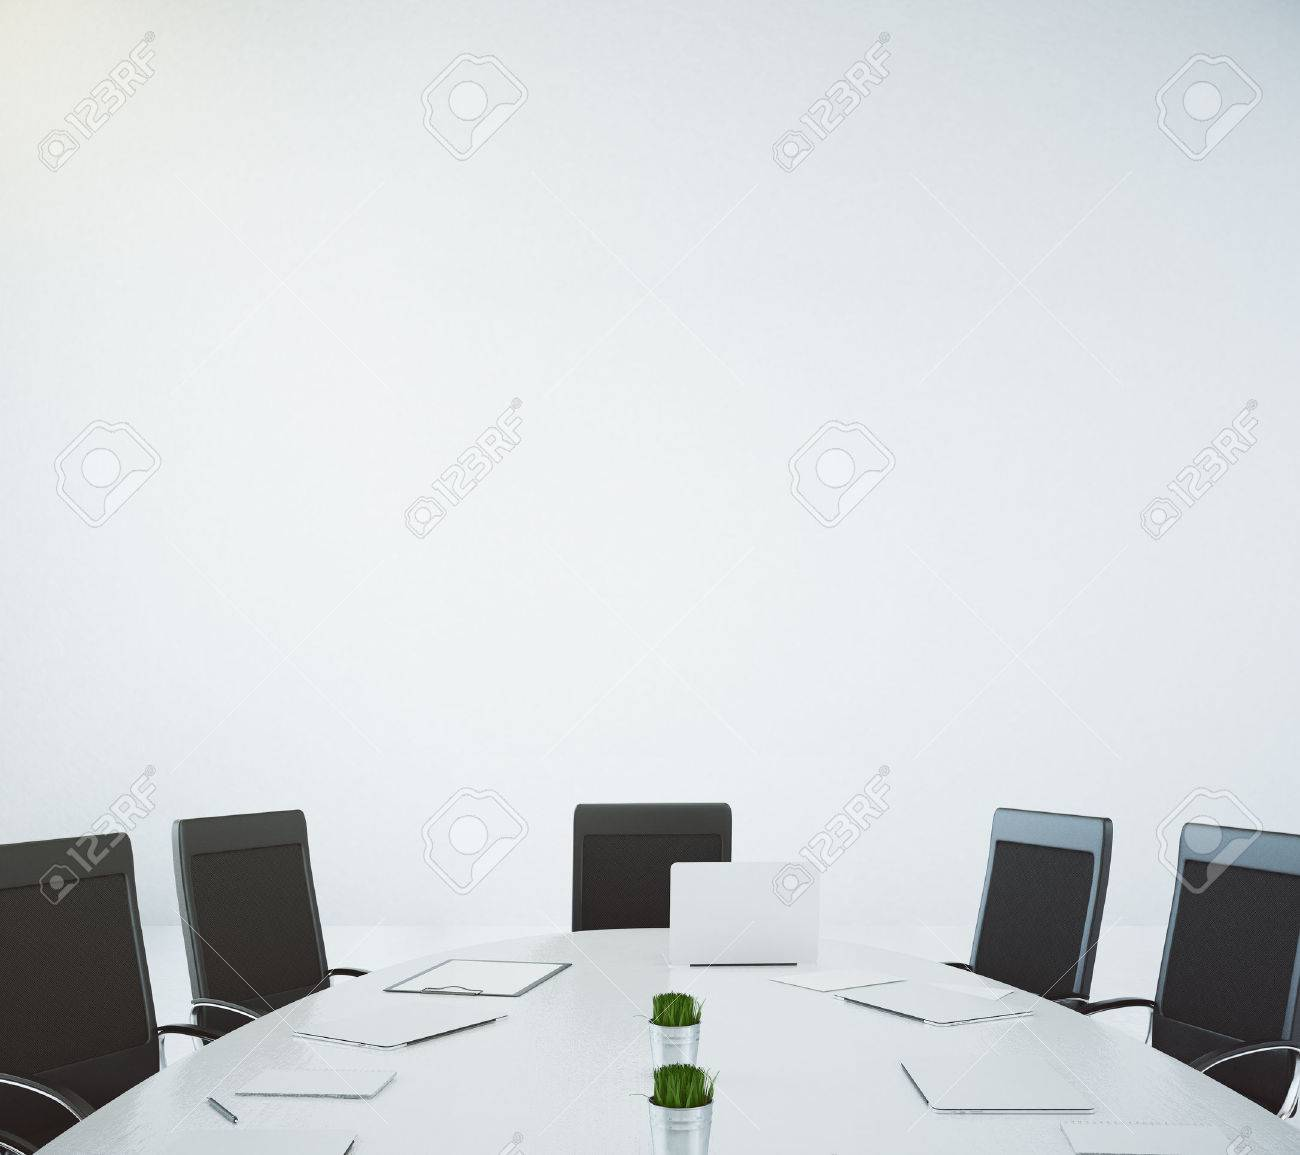 Big white oval table with laptop and chairs at white wall background - 52285612